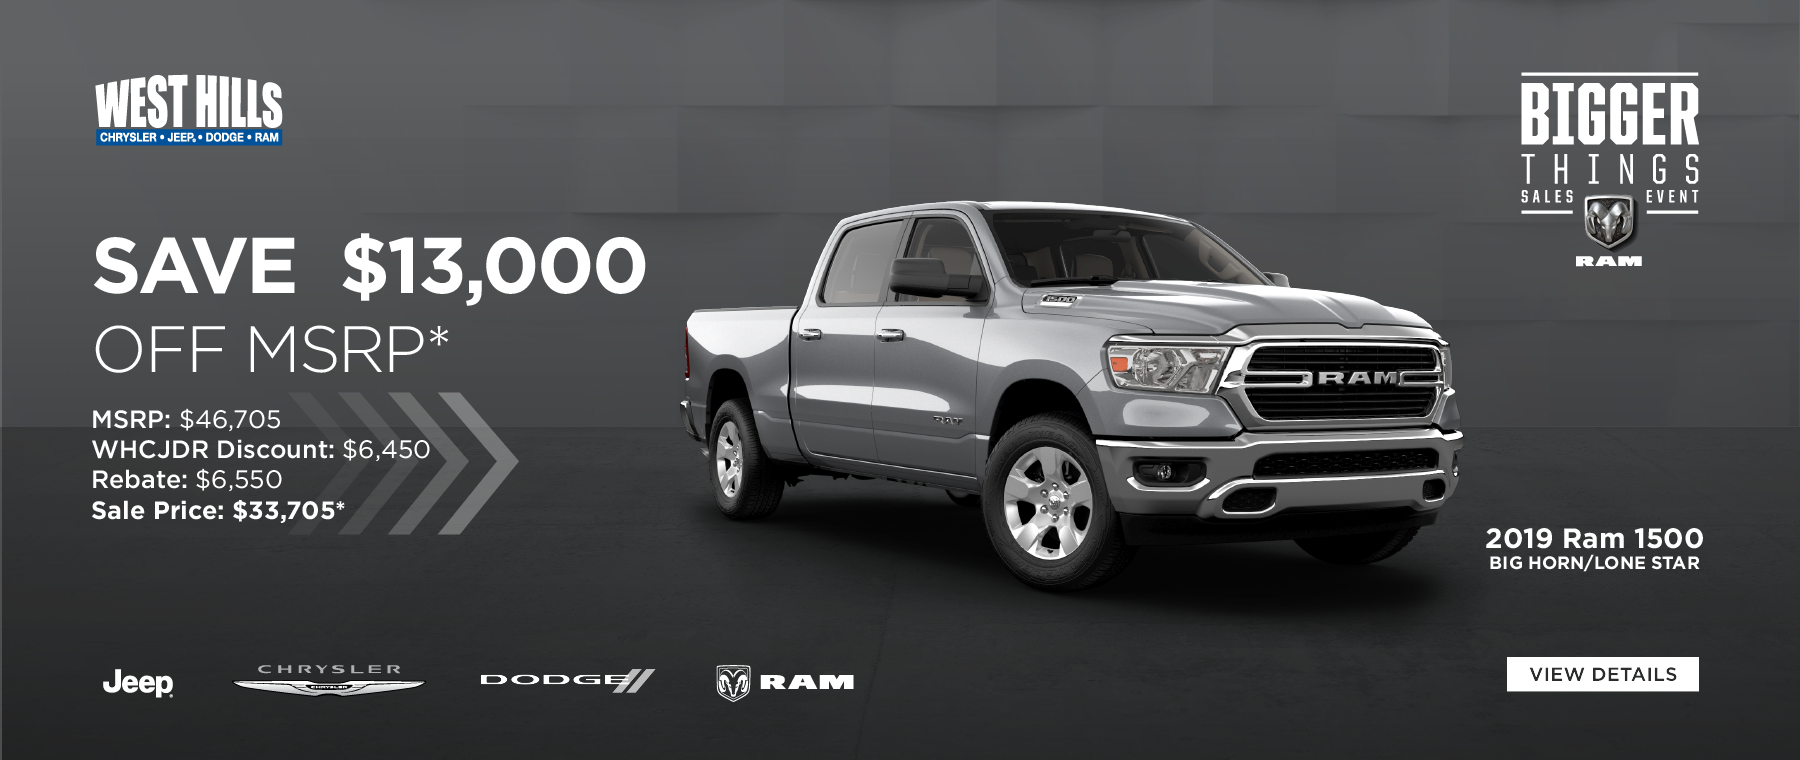 2019 RAM 1500 BIG HORN/LONE STAR (Featured Vehicle)  MSRP: $46,705 WHCJDR Discount: $6,450 Rebate: $6,550 Sale Price: $33,705* SAVE $13, 000 OFF MSRP*    * Offer valid on 2019 RAM 1500 BIG HORN/LONE STAR. VIN: 1C6SRFFT1KN715126. MSRP: $46,705. WHCJDR Discount: $6,450. Rebate: $6,550.Sale Price: $33,705. Based on approval of program ID 70CK1, 44CKB3, 45CKE1, WECKA1, WECKA 41CK35. Subject to credit approval. Down payment and monthly payment may vary. Excludes taxes, tags, registration and title, insurance and dealer charges. A negotiable dealer documentary service fee of up to $150 may be added to the sale price or capitalized cost. Exp. 5/31/2019.